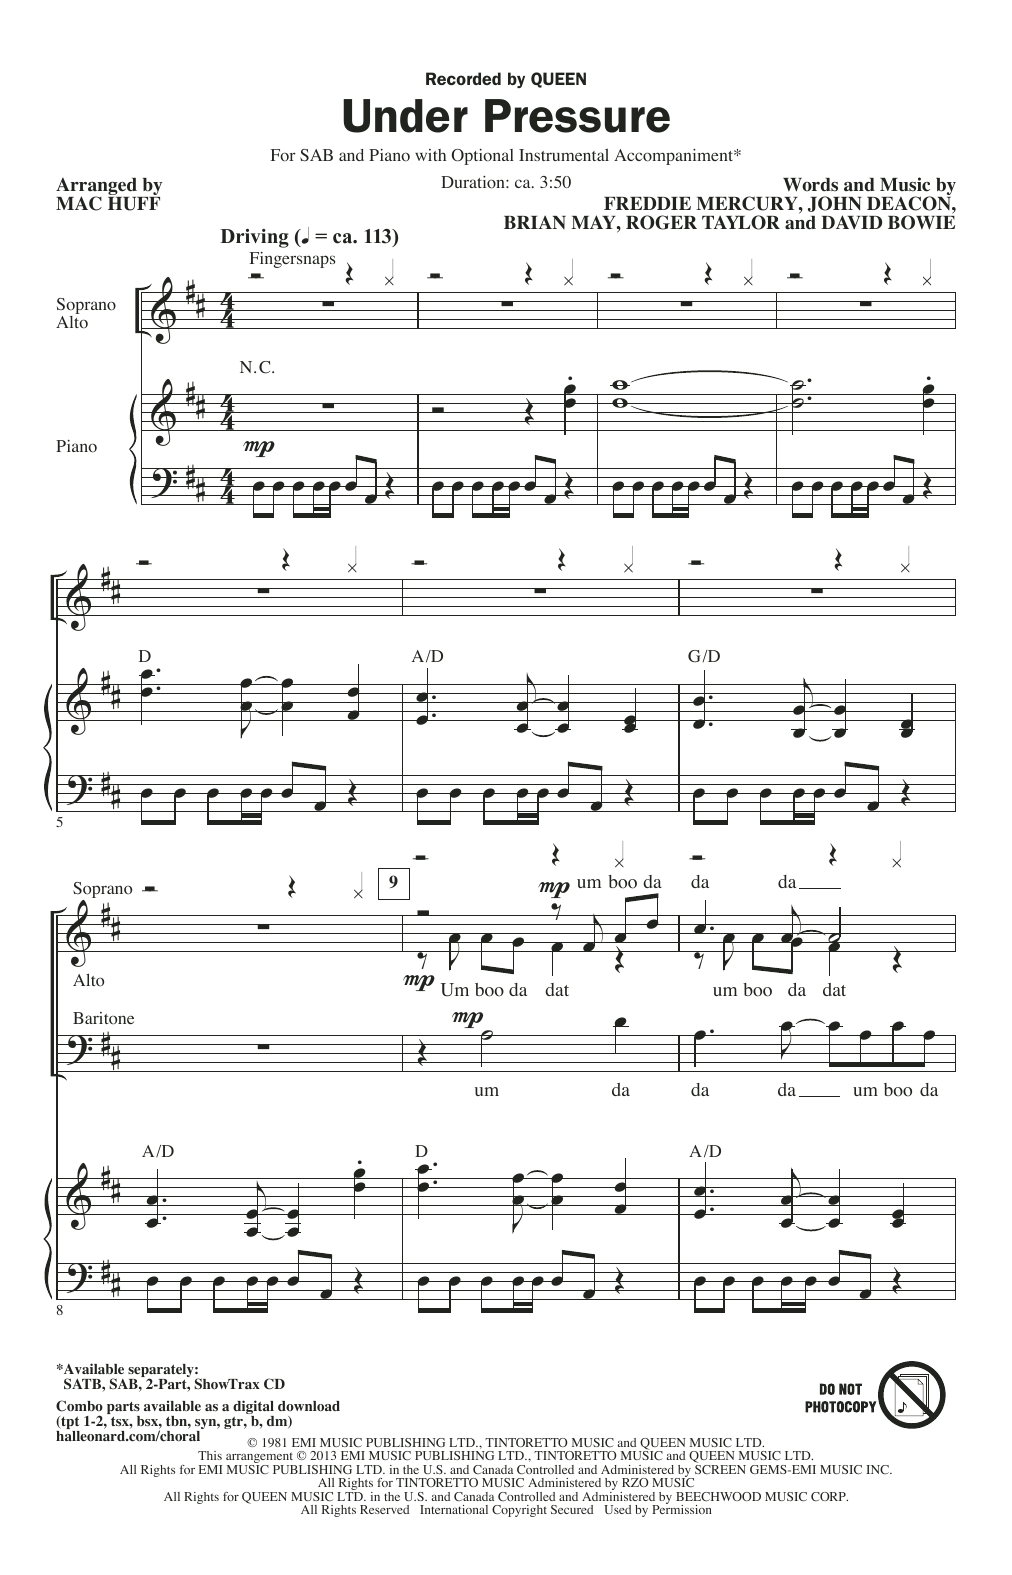 Queen & David Bowie Under Pressure (arr. Mac Huff) sheet music notes and chords. Download Printable PDF.